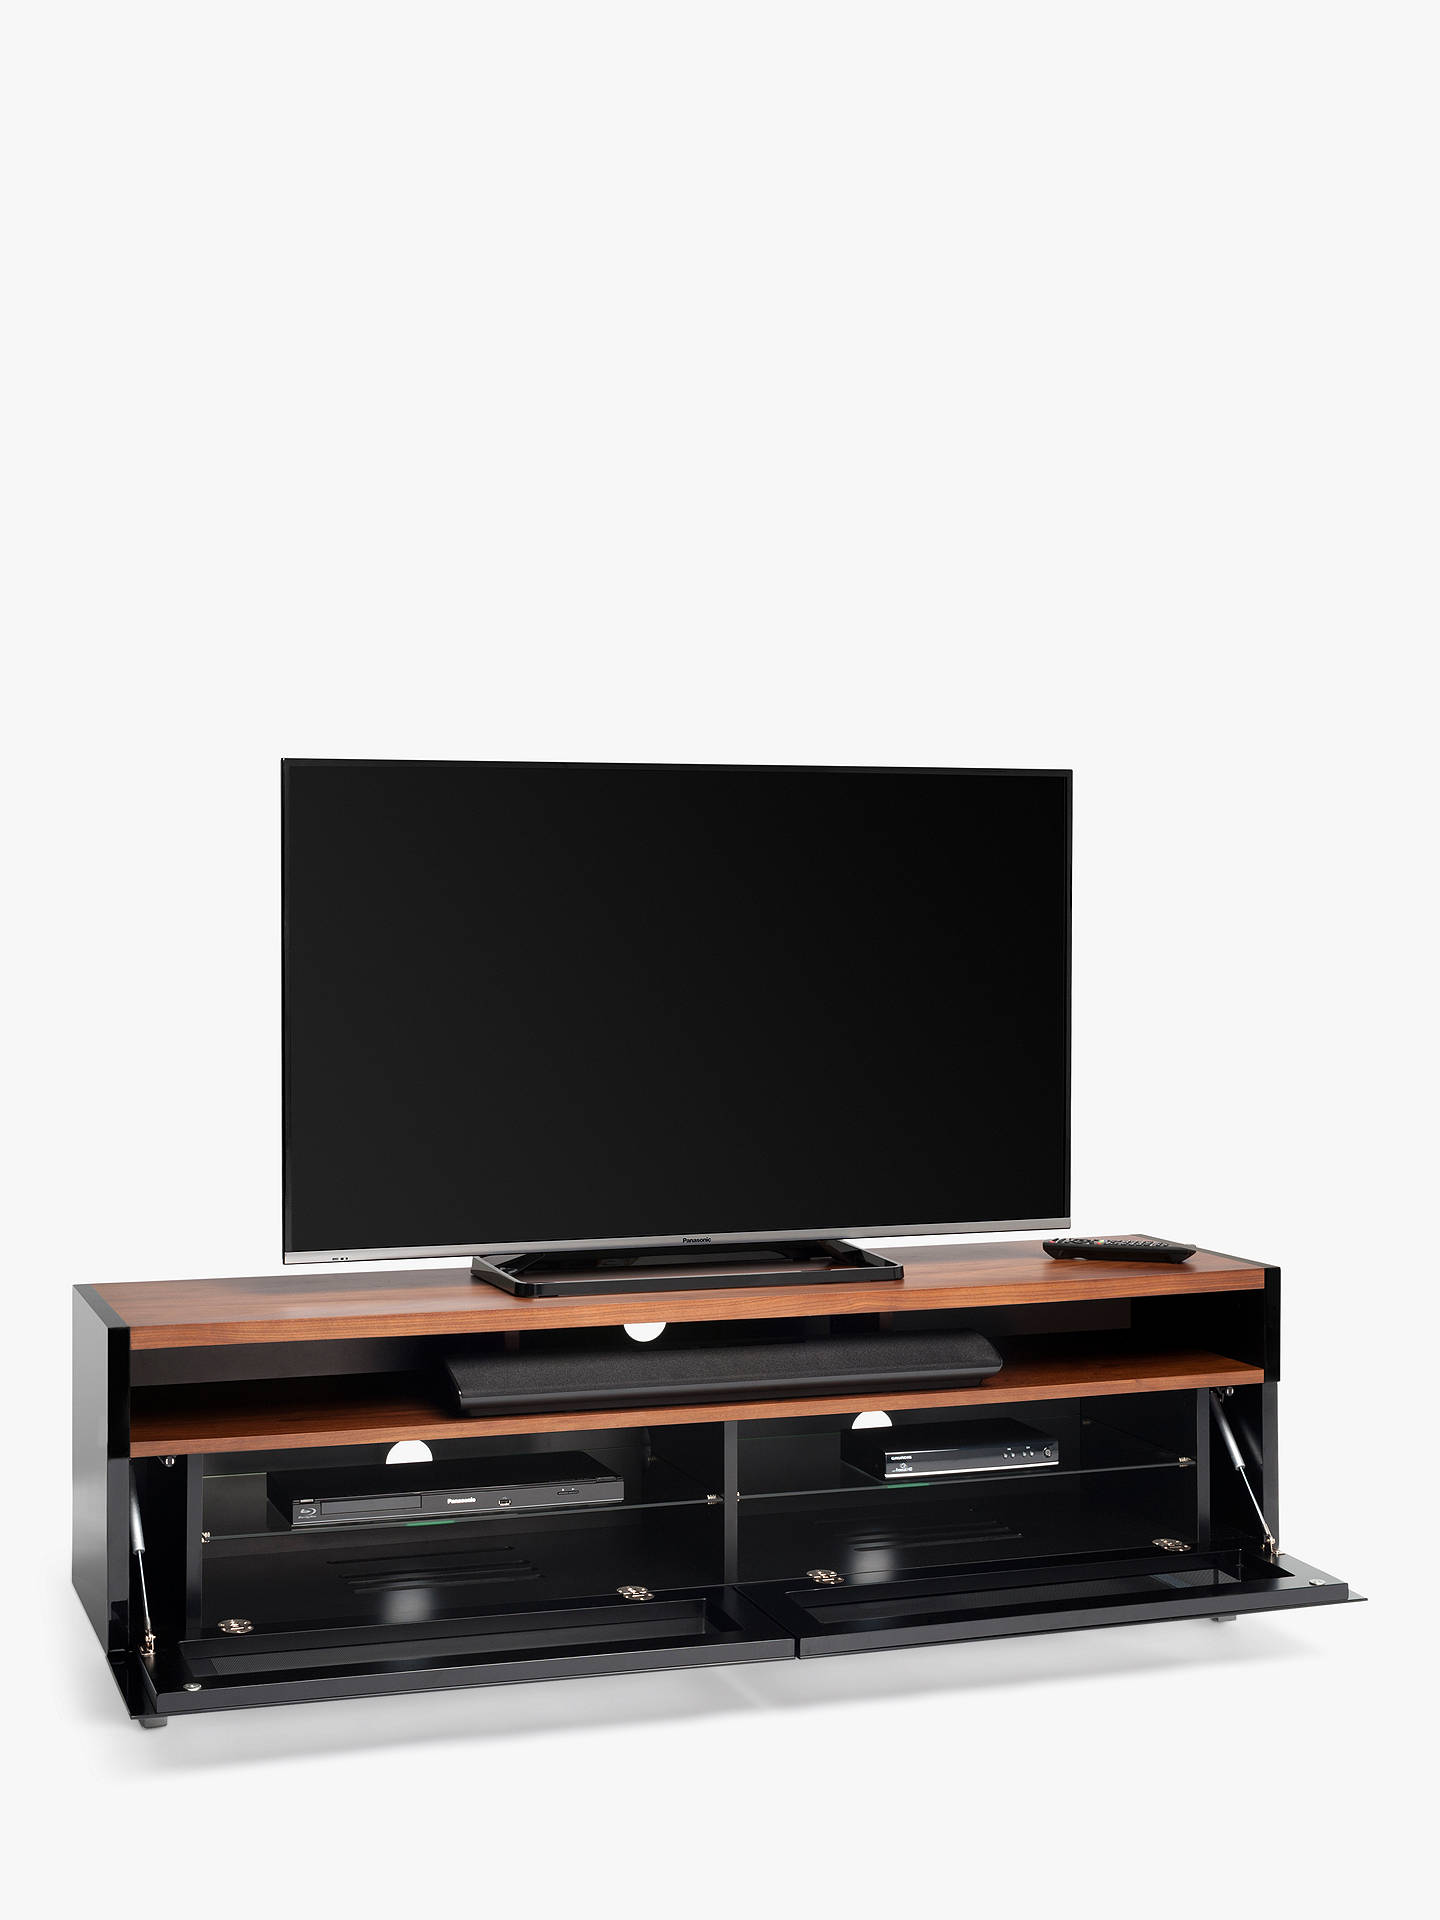 Buytechlink panorama pm160 tv stand for tvs up to 80 with double sided top